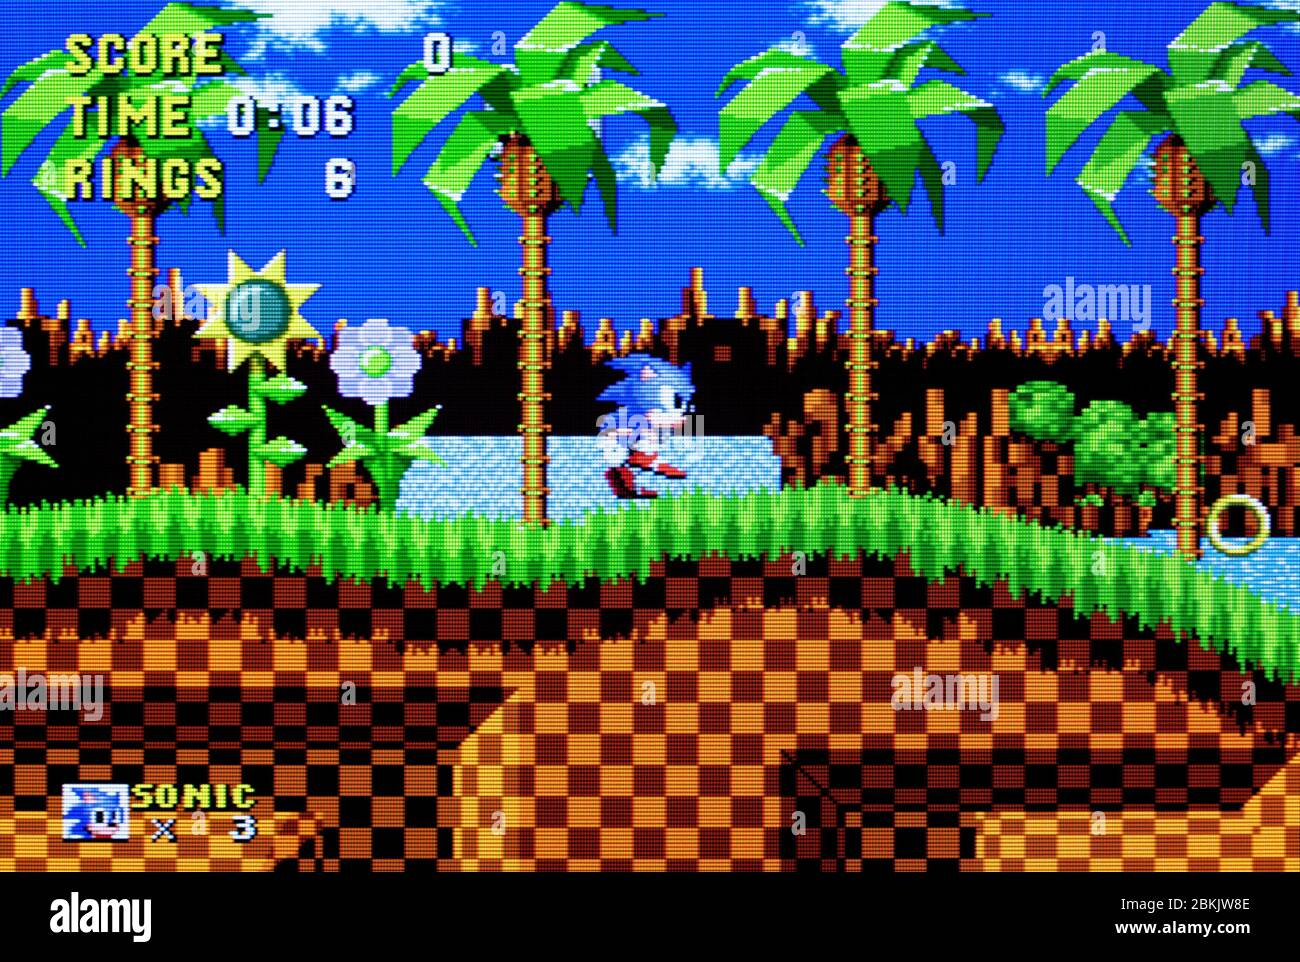 Sonic The Hedgehog Game High Resolution Stock Photography And Images Alamy